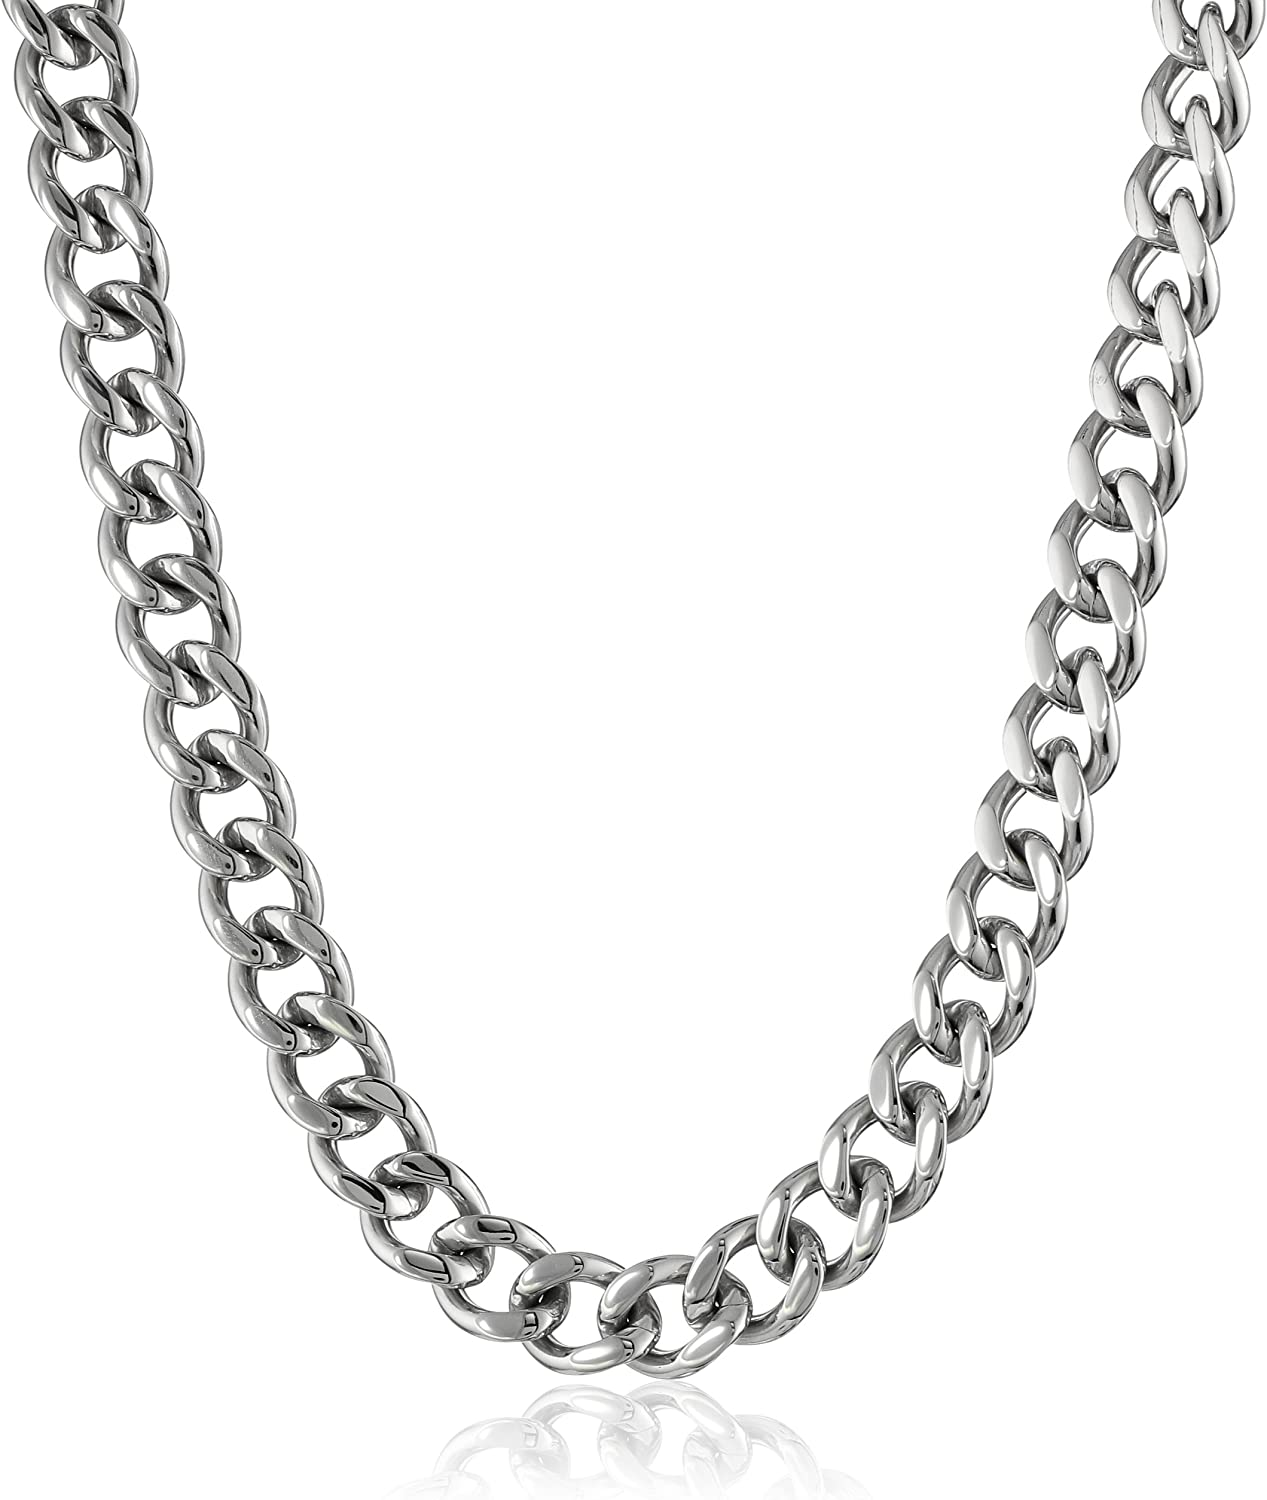 """Steel by Design Heart Shape Link Chain Necklace 20/"""" Length"""